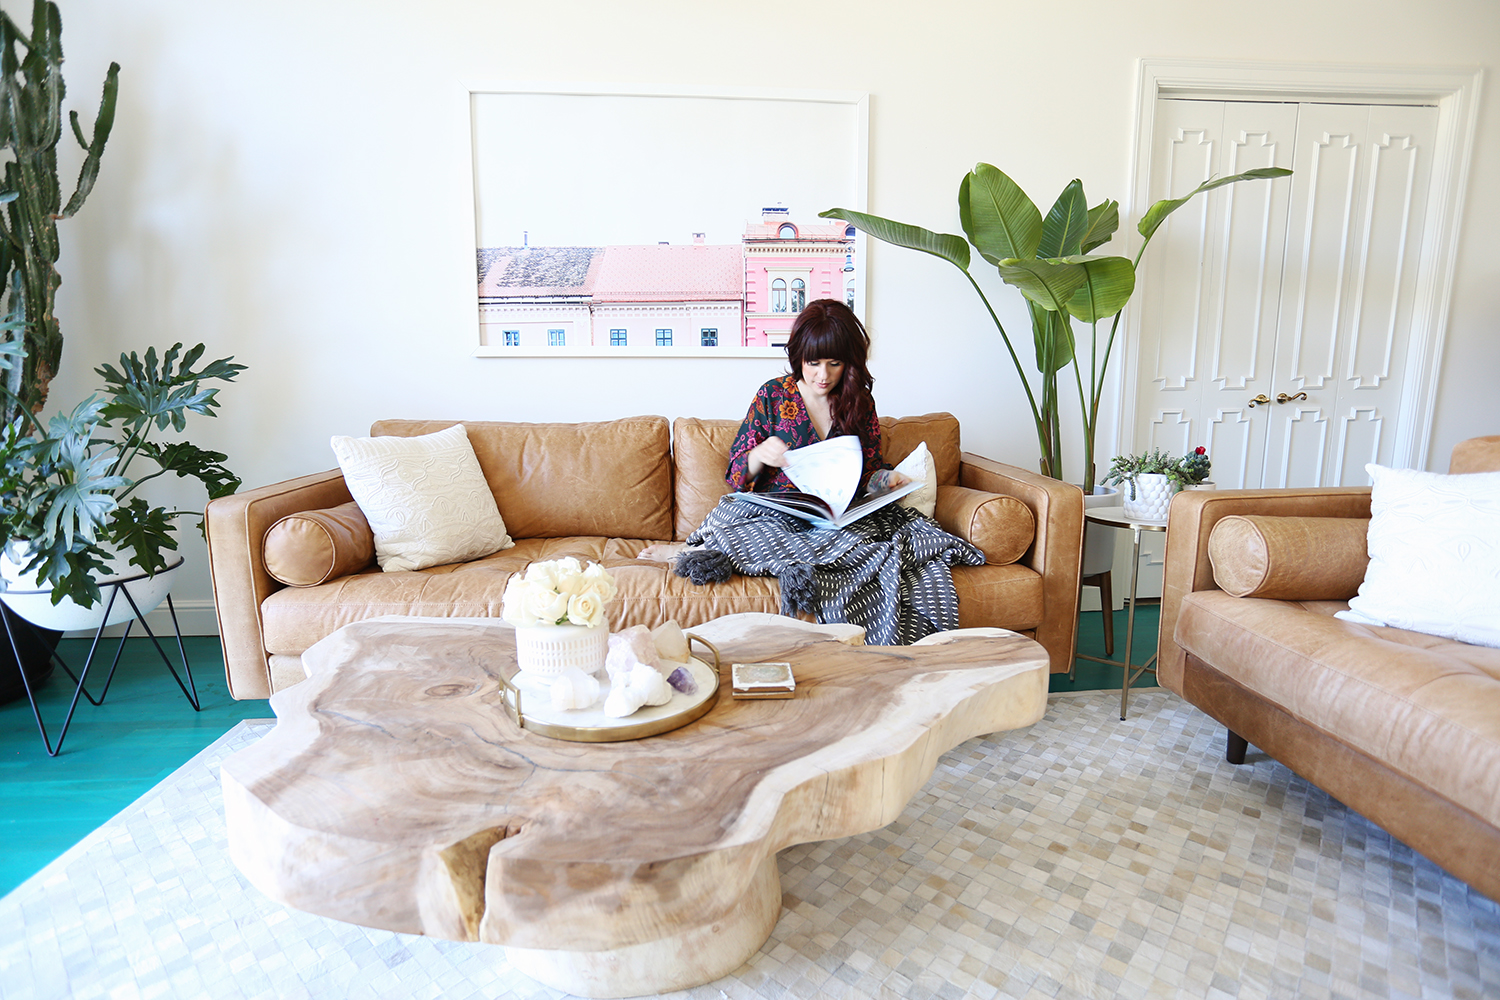 Elsie Larson's Living Room Tour